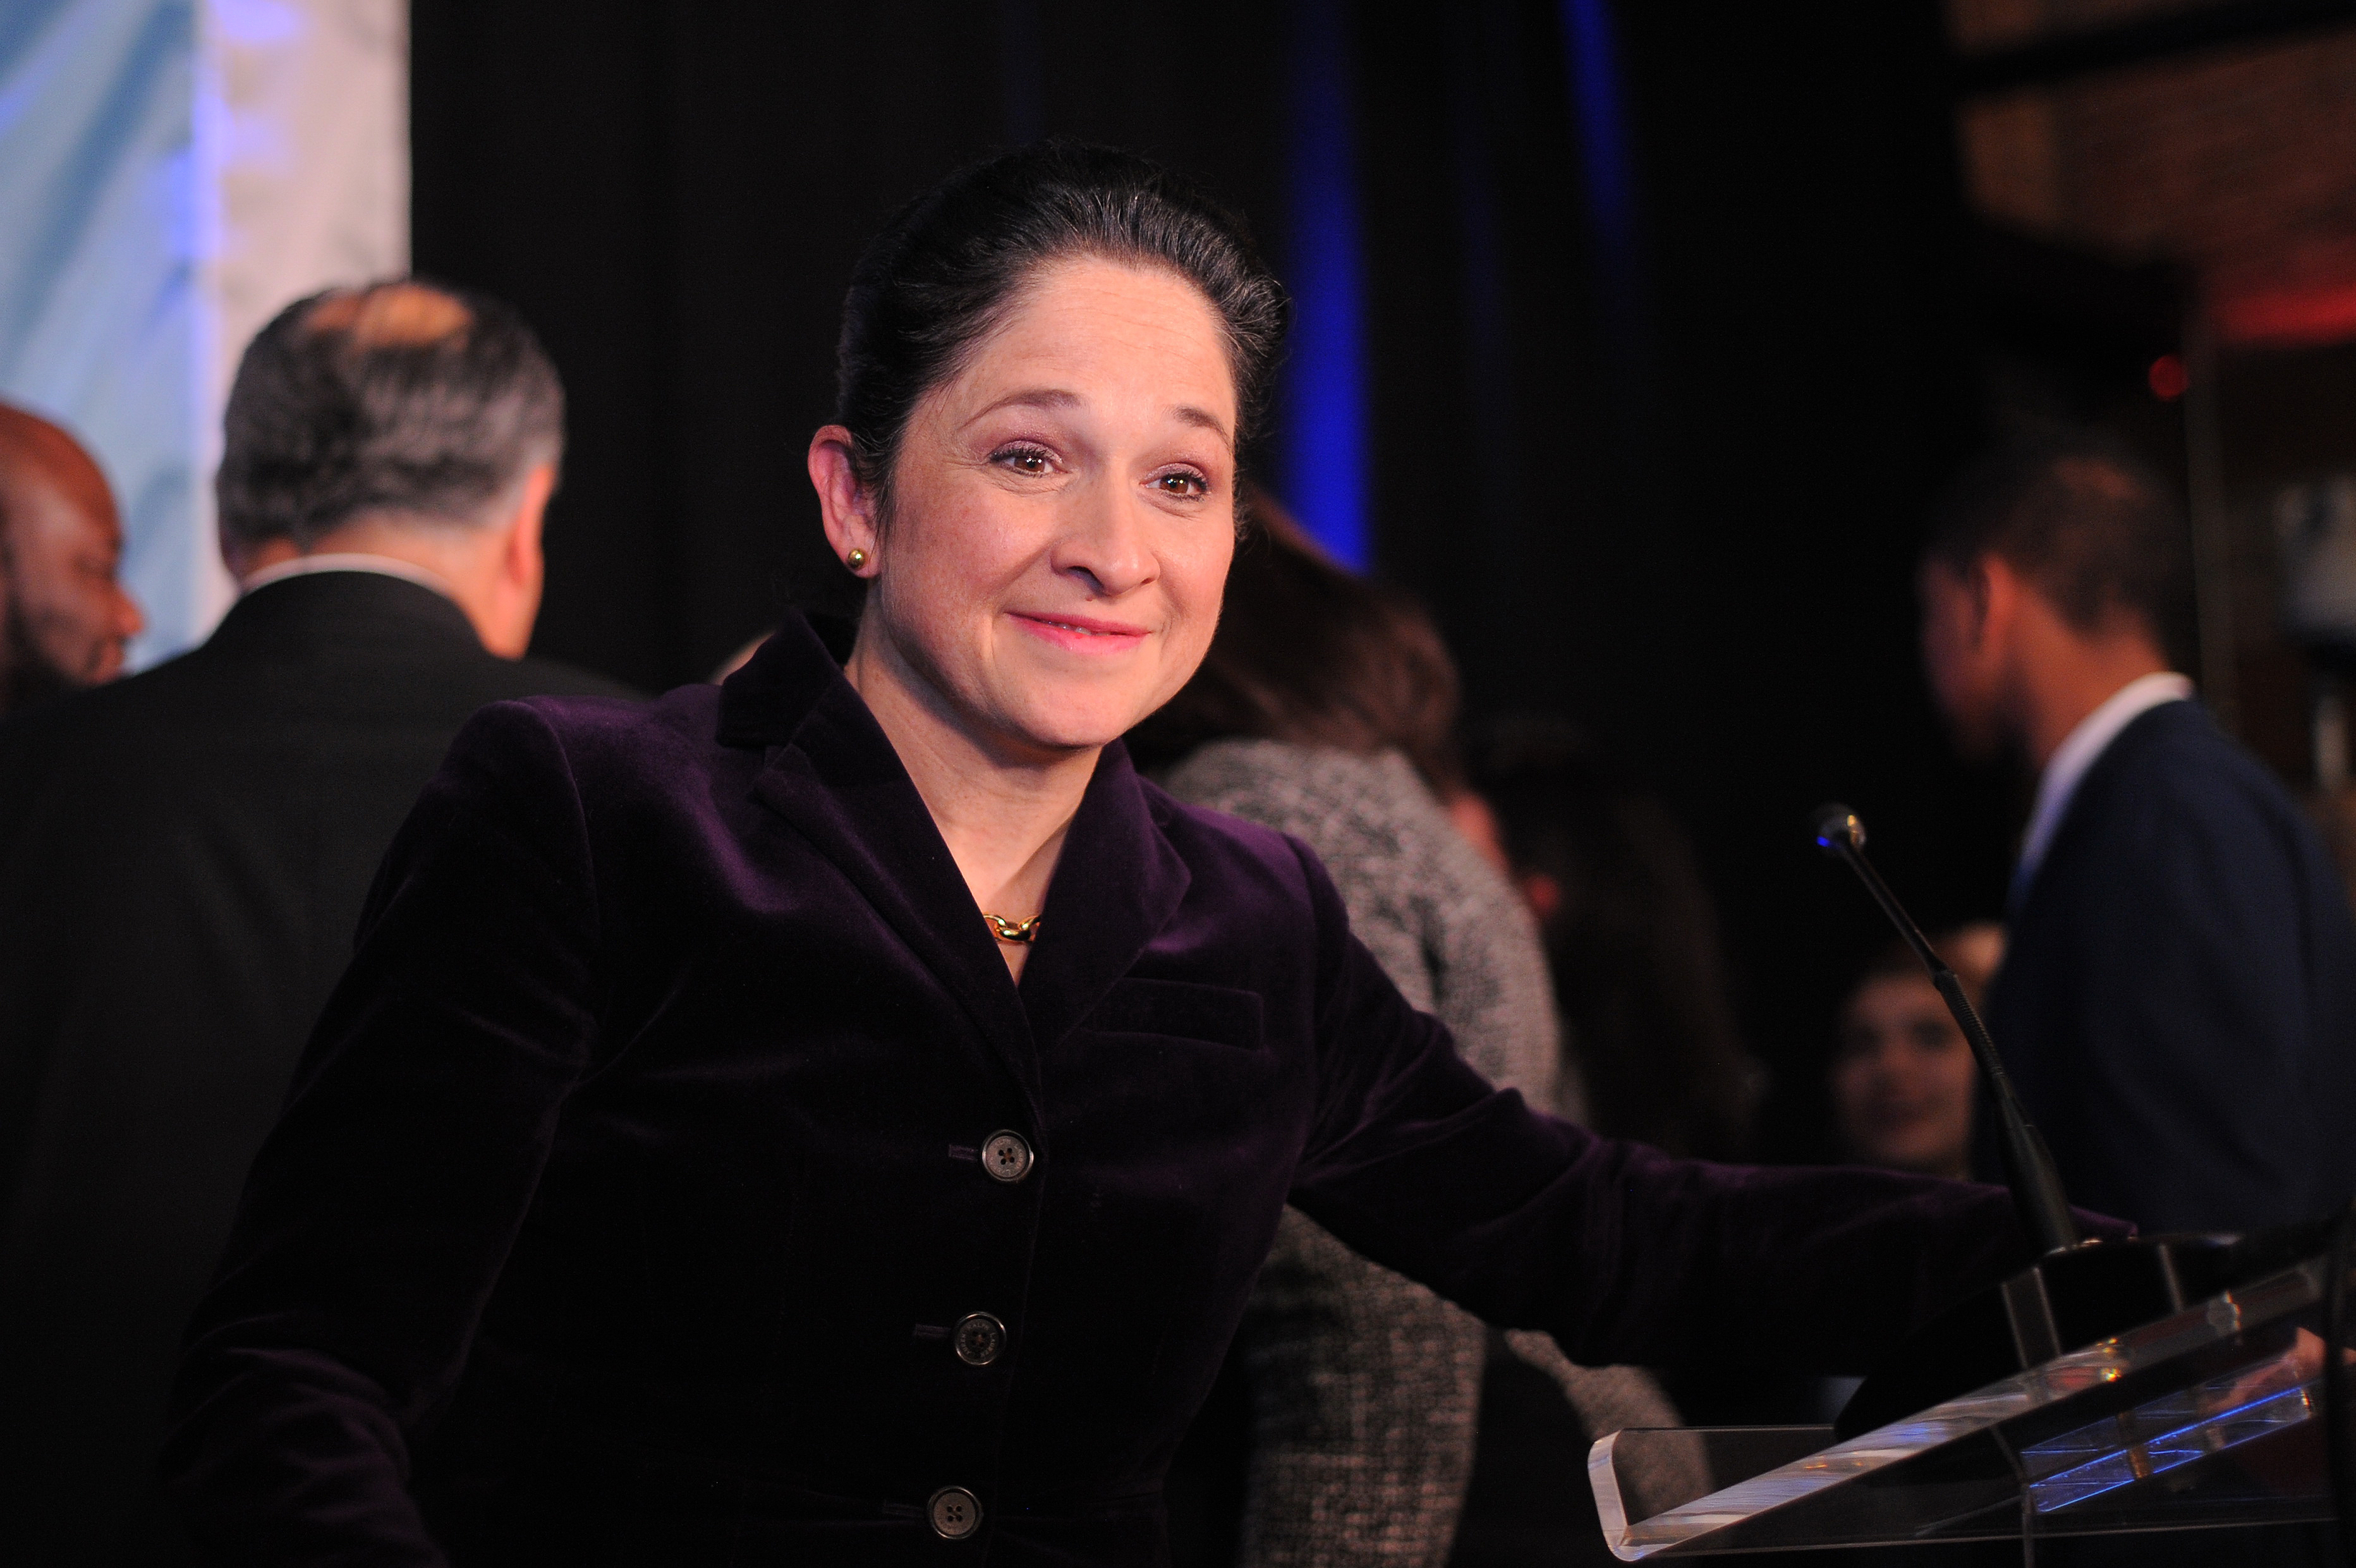 Illinois Comptroller Susana Mendoza has proposed a bill that would allow resigning state legislators to be paid only for days they actually worked in their last month on the job.